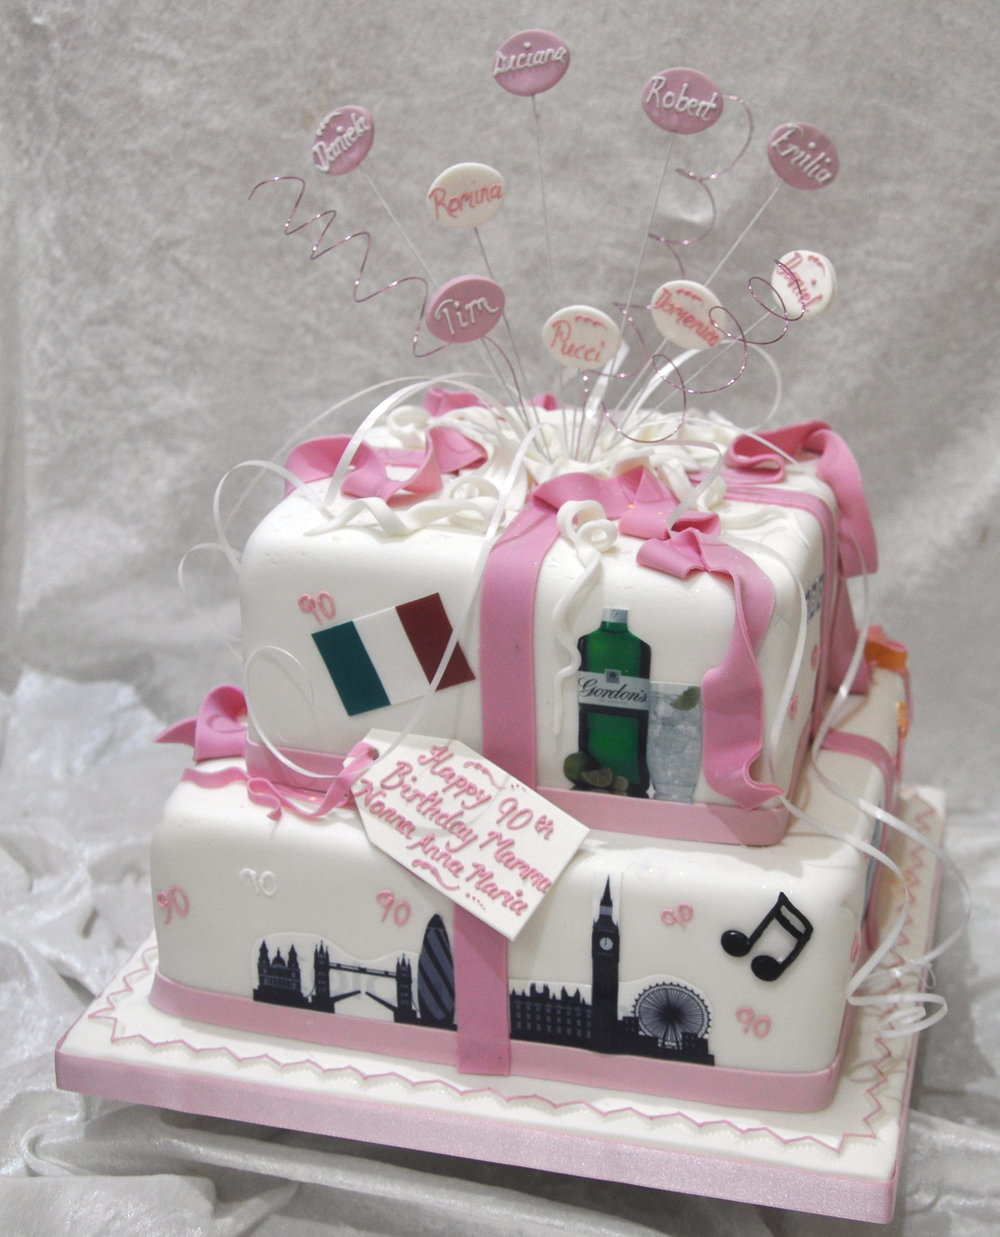 Parcel explosion - A very personal parcel explosion cake made for an elegant Italian lady on her landmark birthday.  The names of her family hand piped on decal plaques, wires, pictures and hand made sugar pieces, with our signature explosion making a super cake suitable for a fun party.